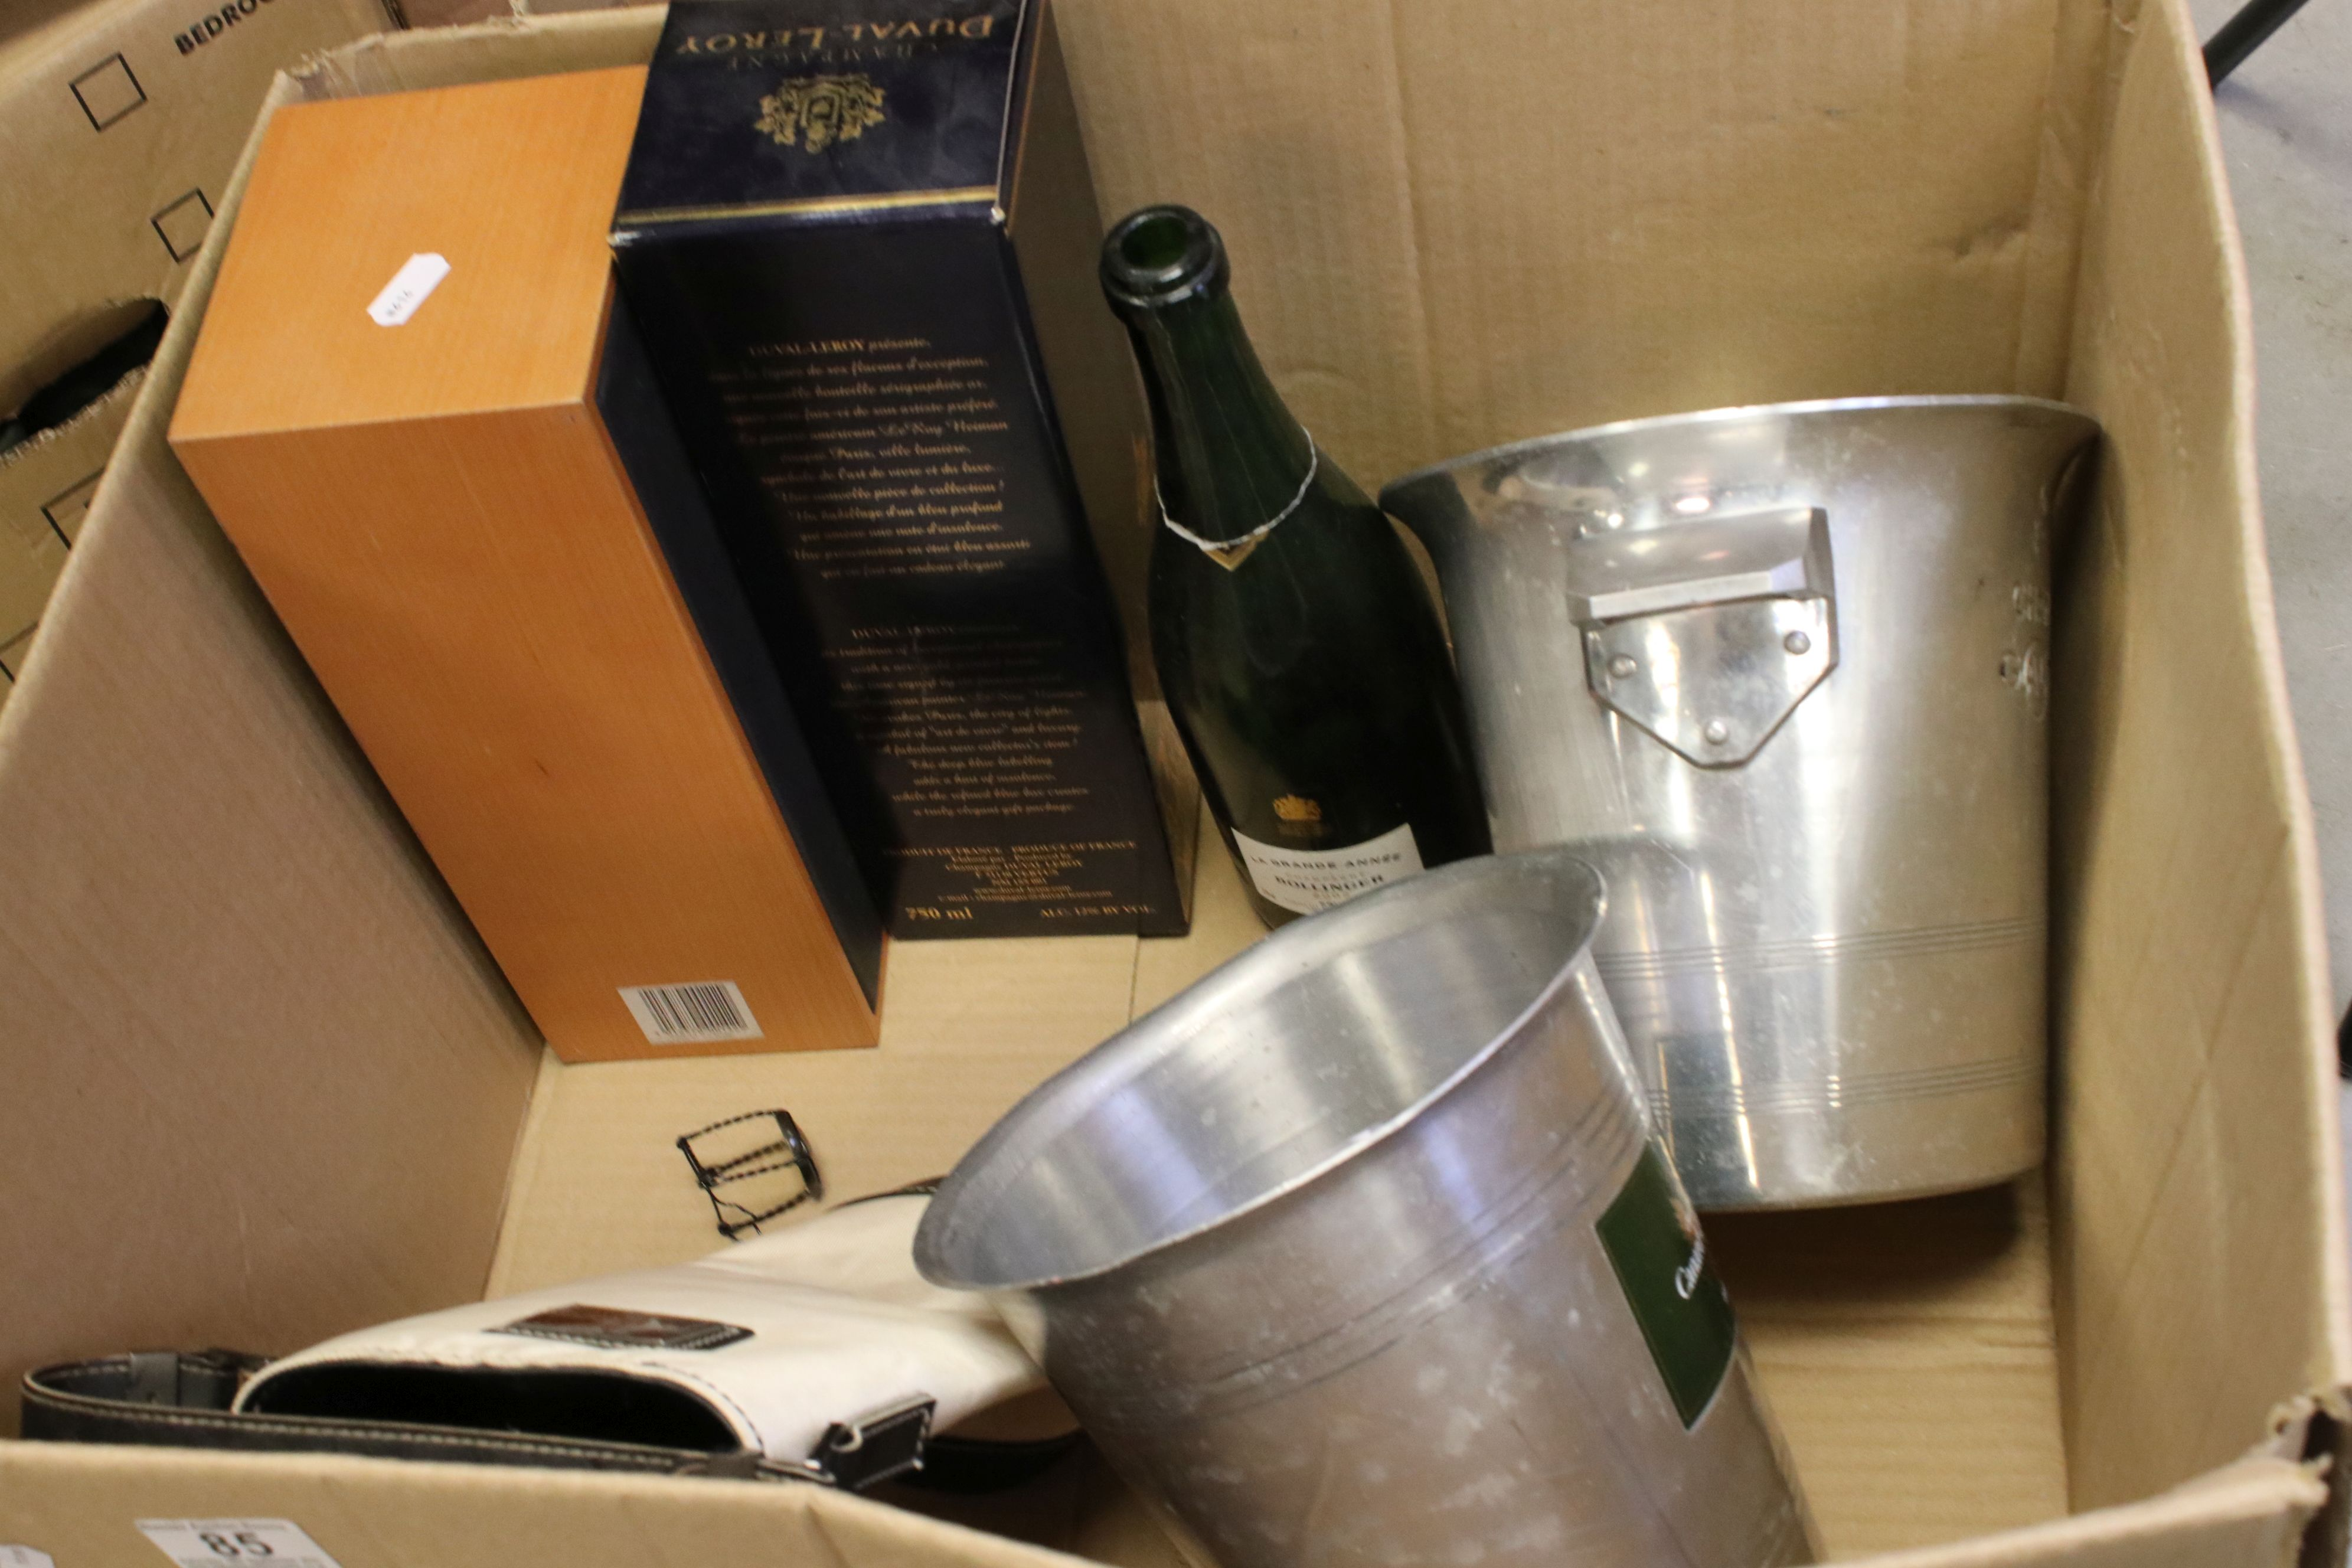 Moet & Chandon Top Hat Ice Bucket together with Five Further Ice Buckets, Moet & Chandon Glass - Image 7 of 8